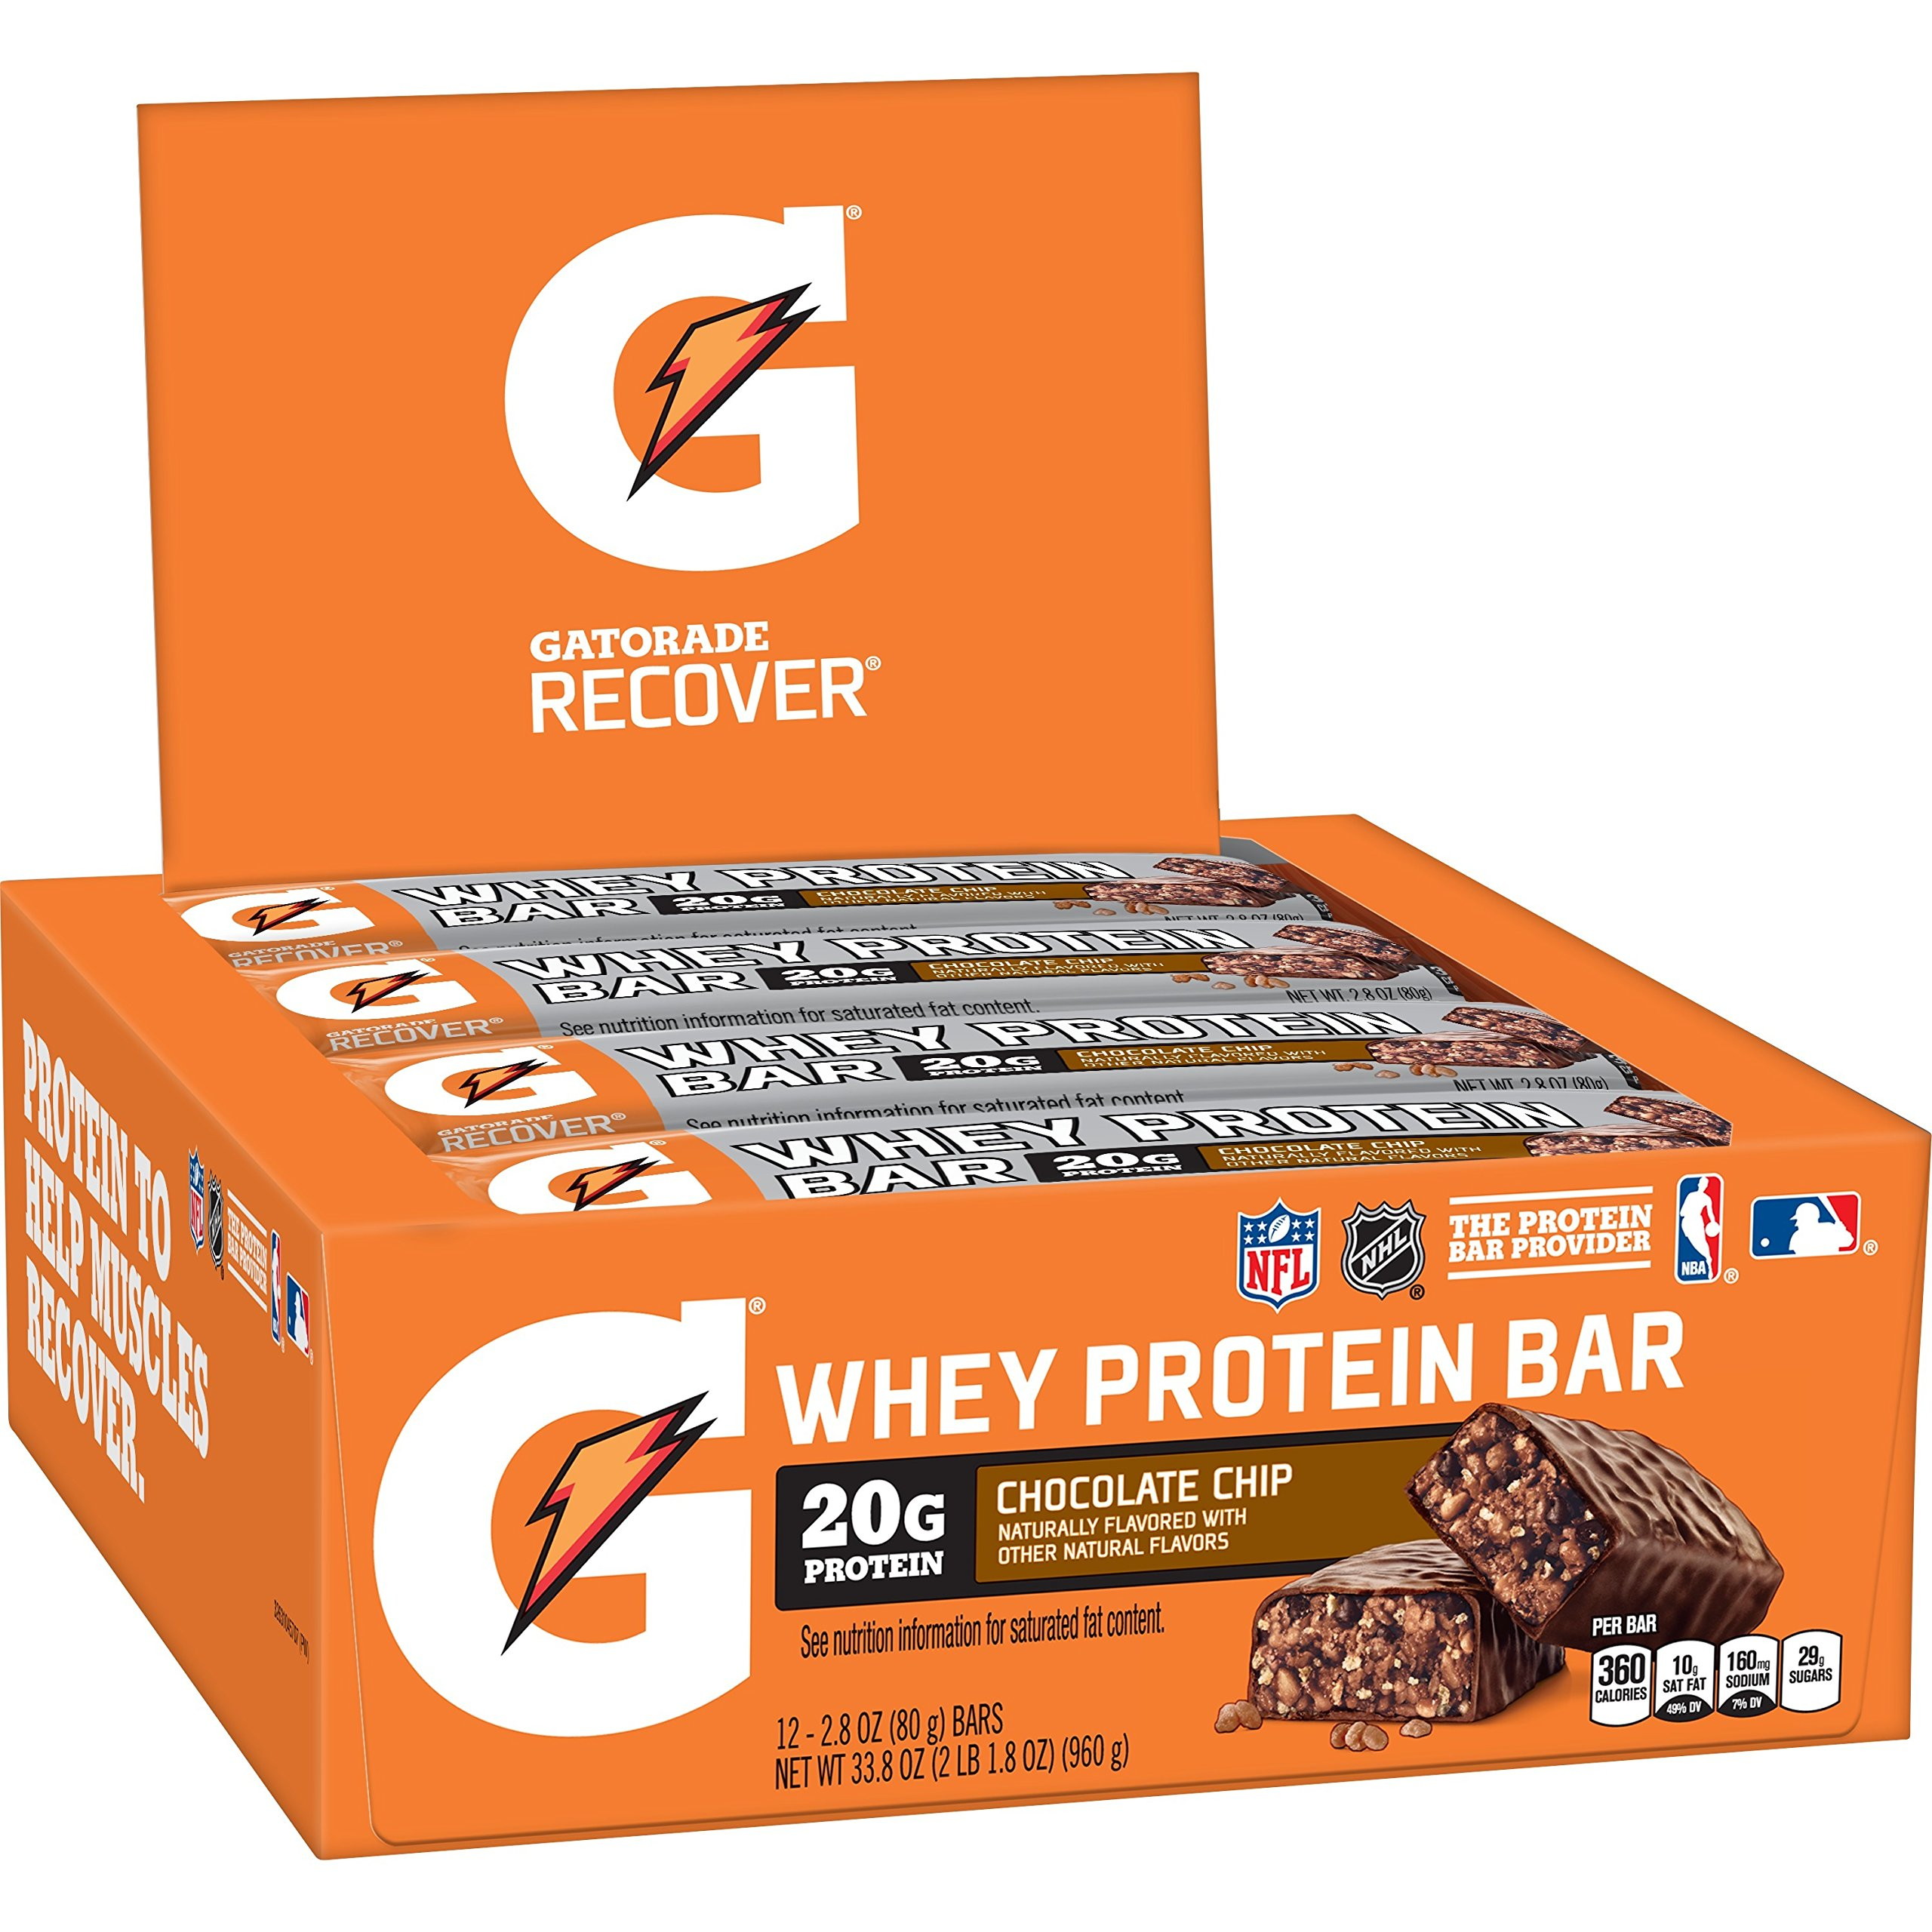 Gatorade Whey Protein Recover Bars, Chocolate Chip, 2.8 ounce bars (12 Count) by Gatorade